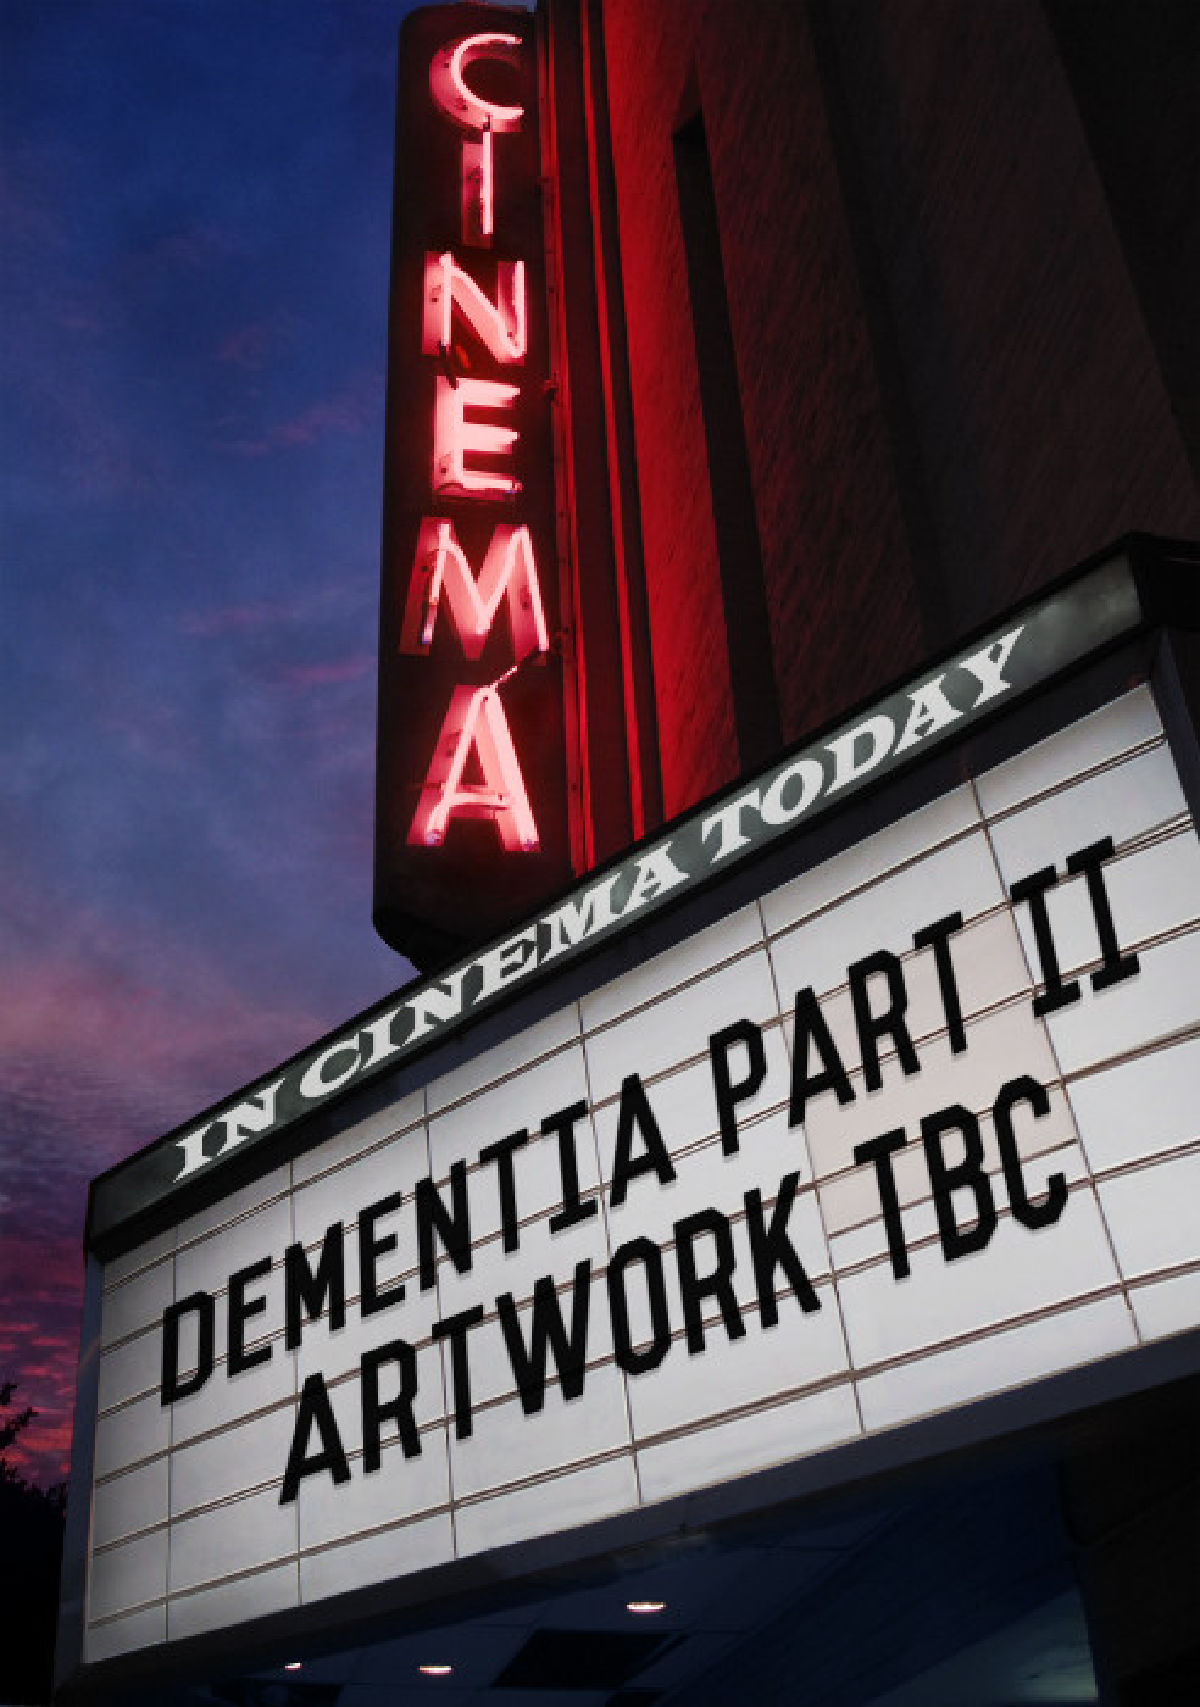 'Dementia Part II' movie poster